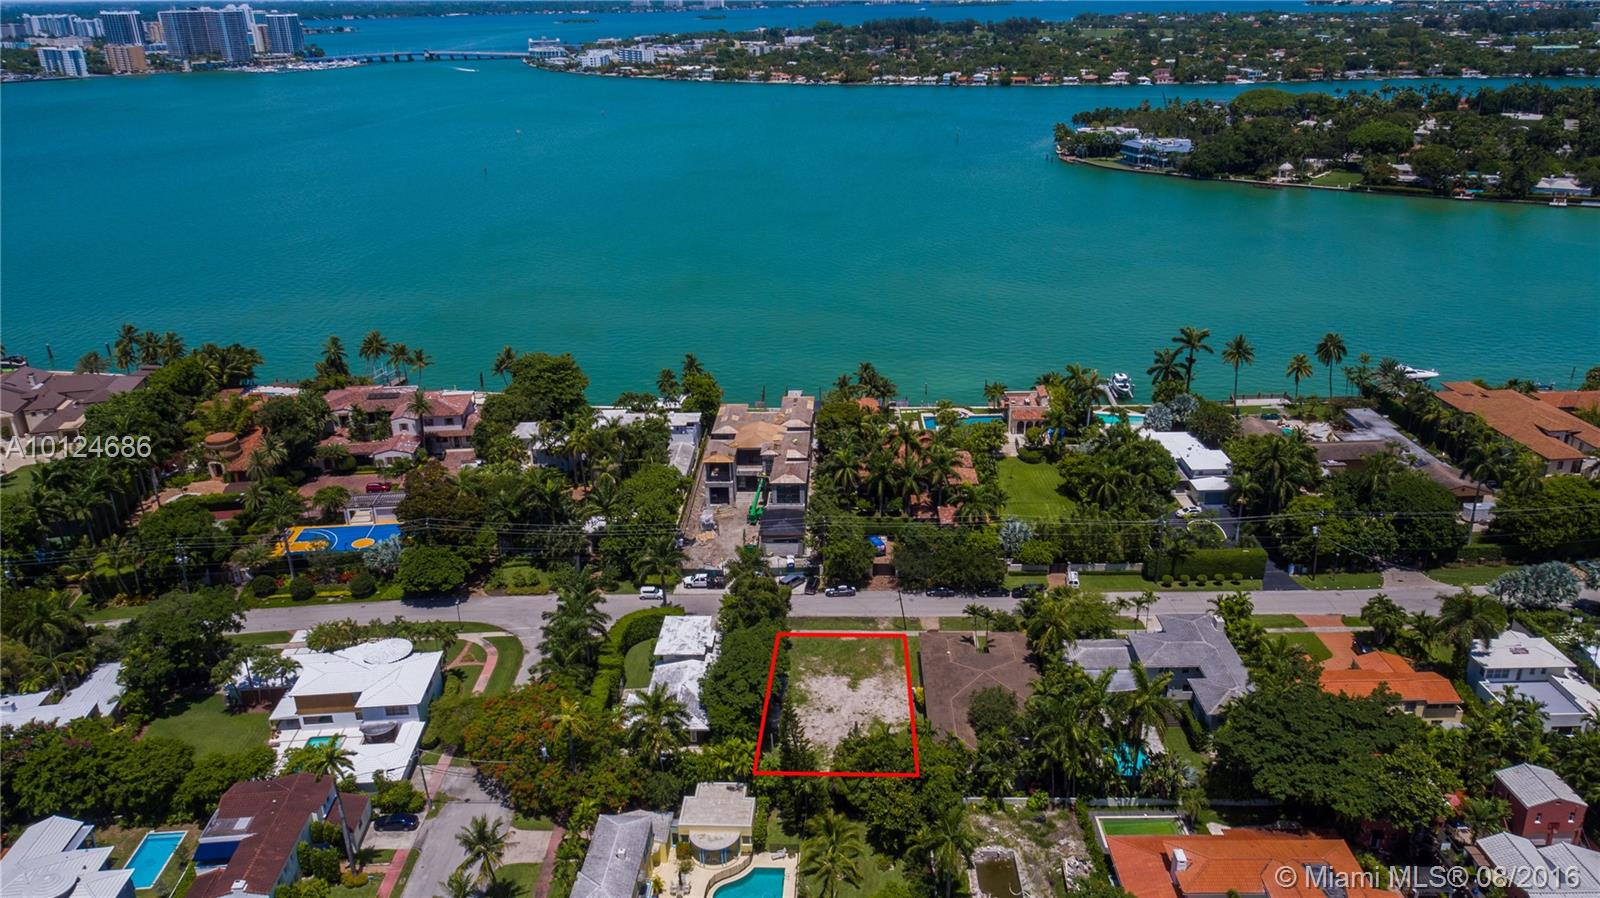 6015 N Bay Rd  For Sale A10124686, FL